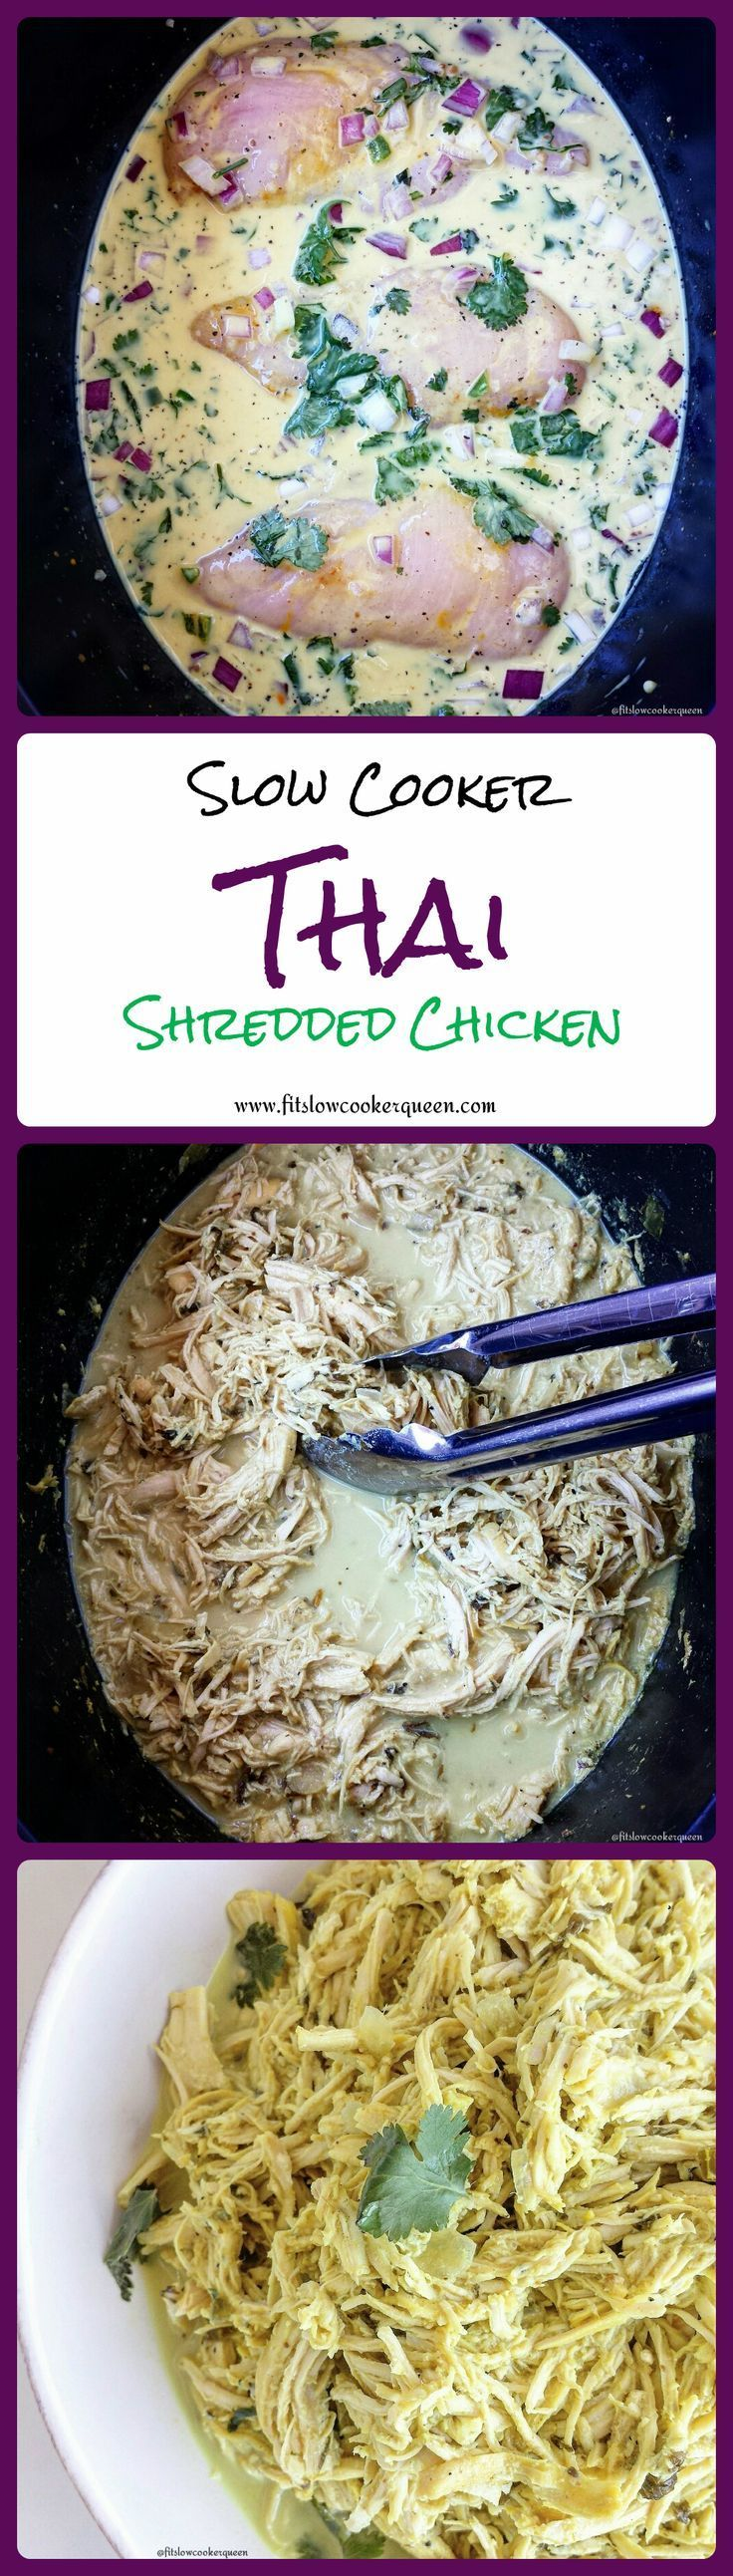 Healthy slow cooker / crockpot recipe -  Shredded chicken is so easy to make in the slow cooker. With basically no prep, you will have succulent Thai-flavored chicken ready for your disposal.